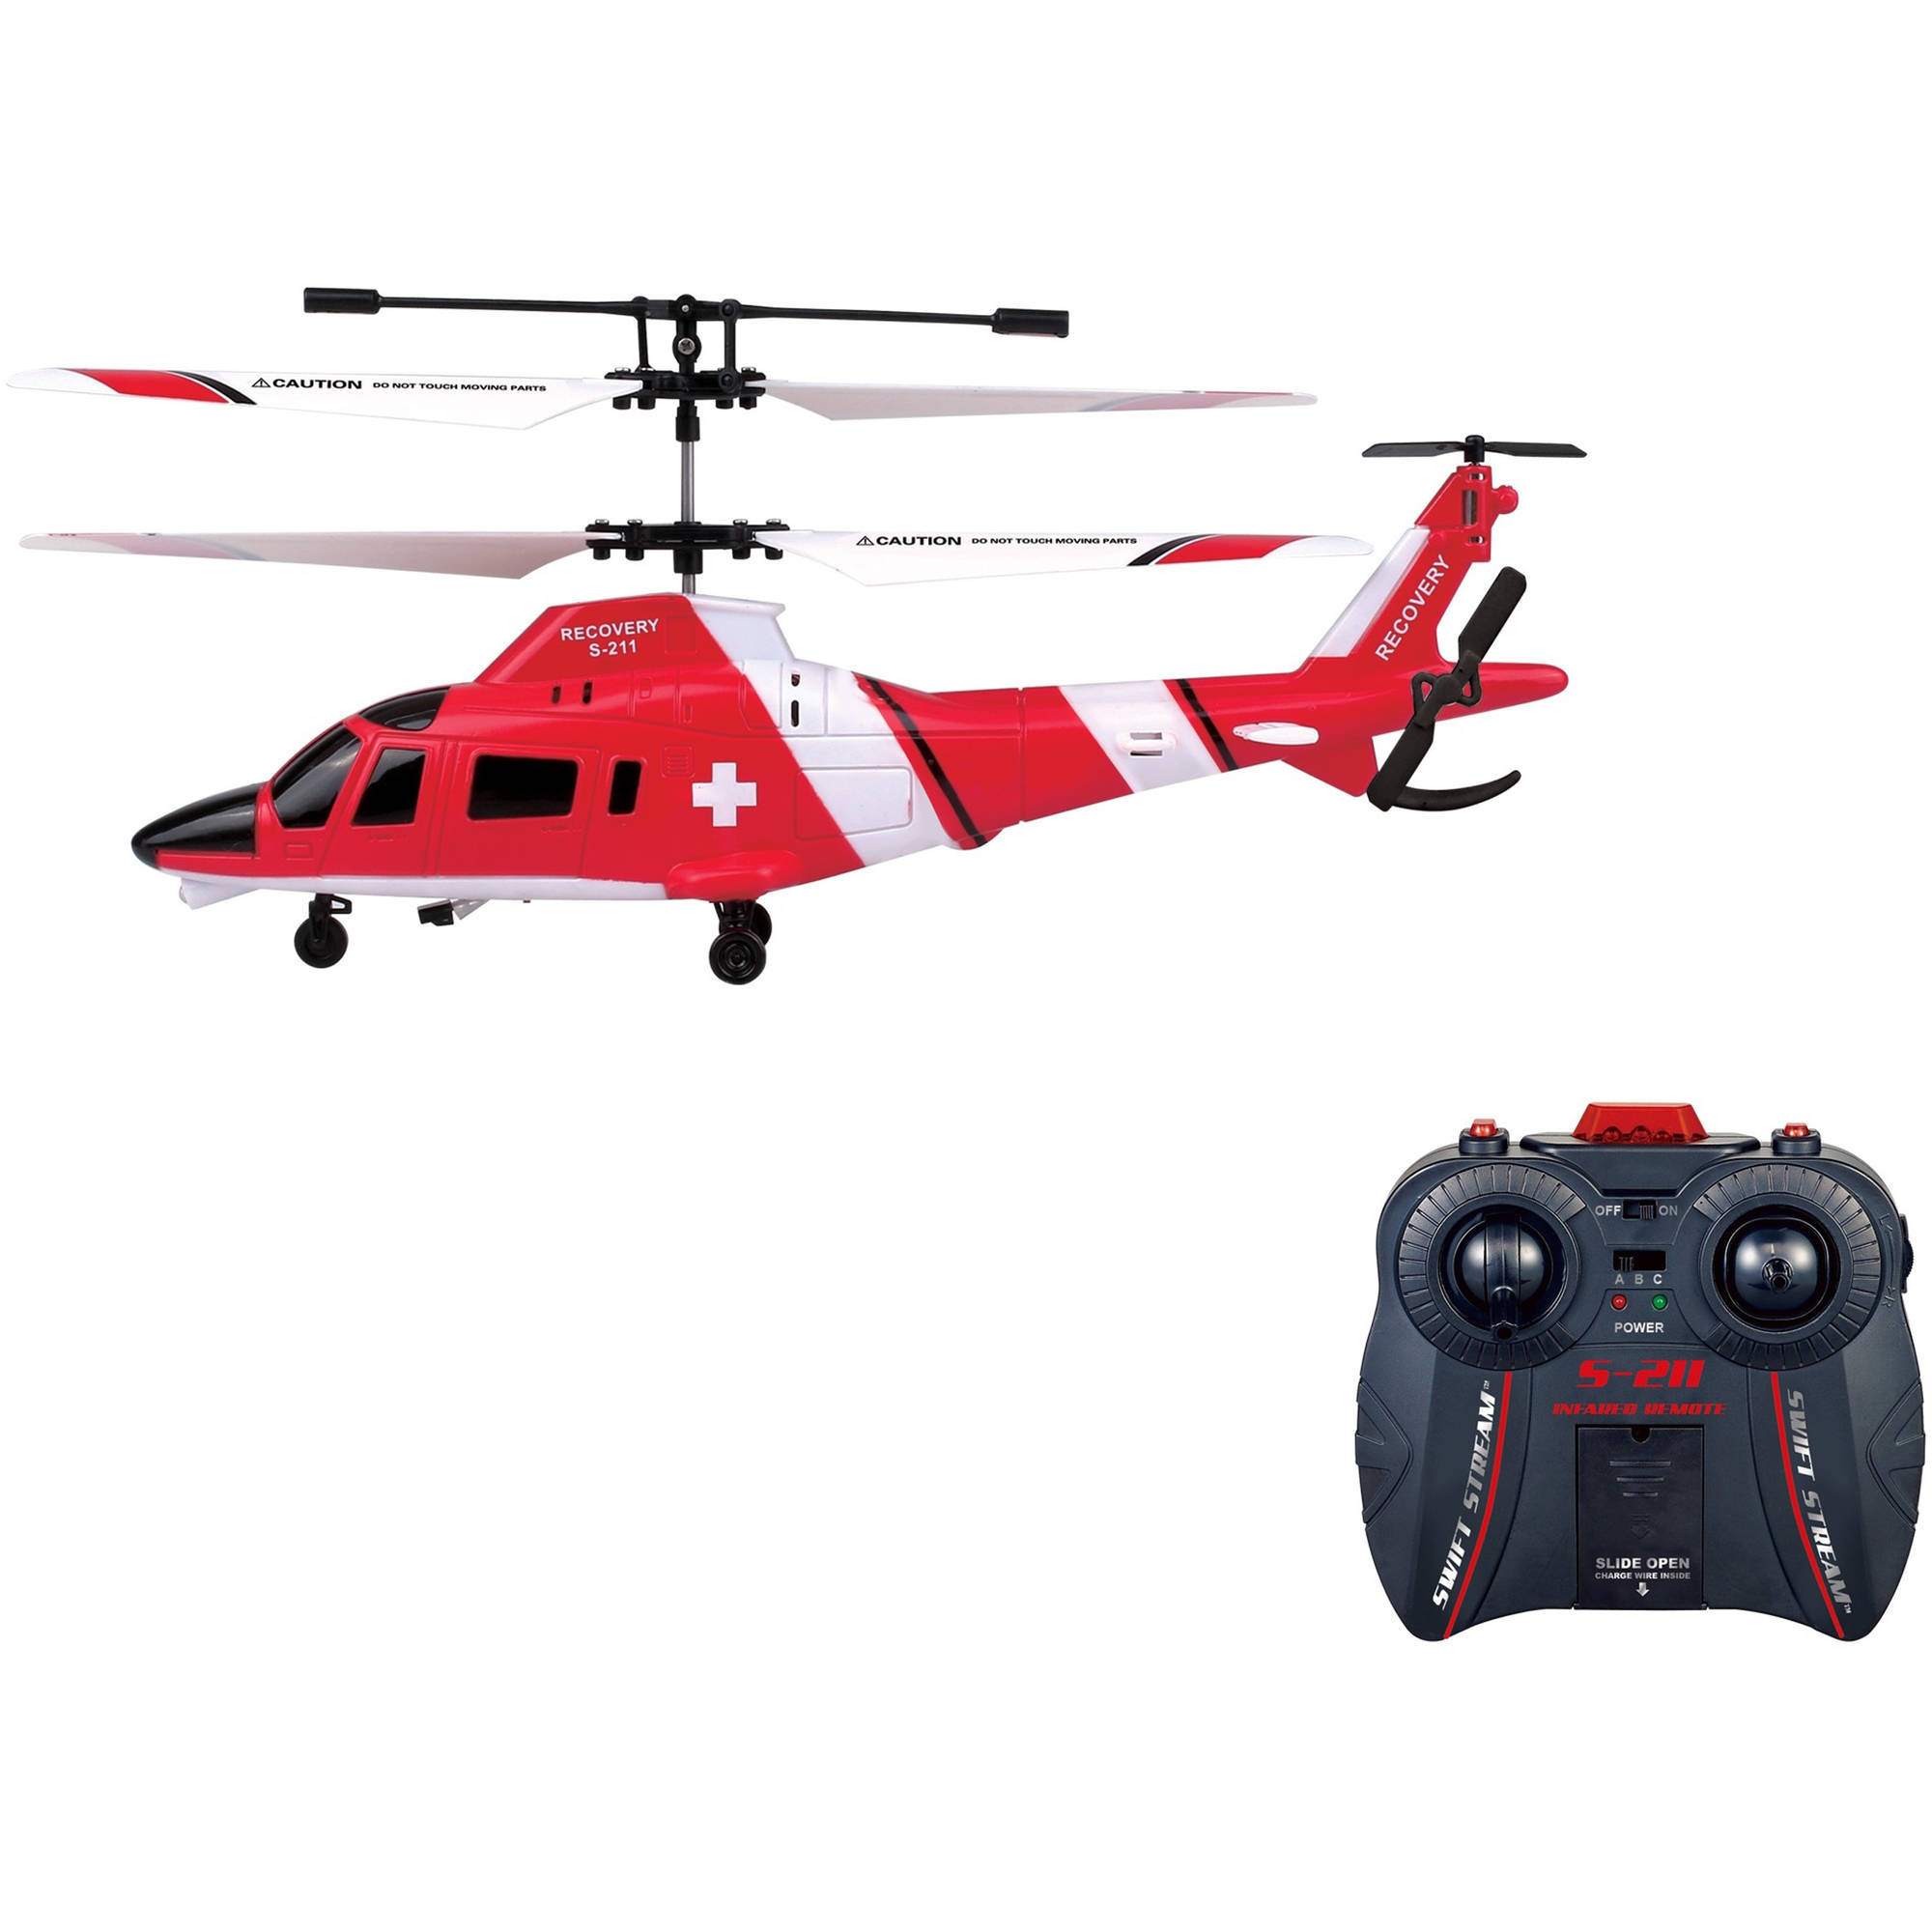 "Swift Stream S-211 Remote Control 9"" Helicopter Recovery"